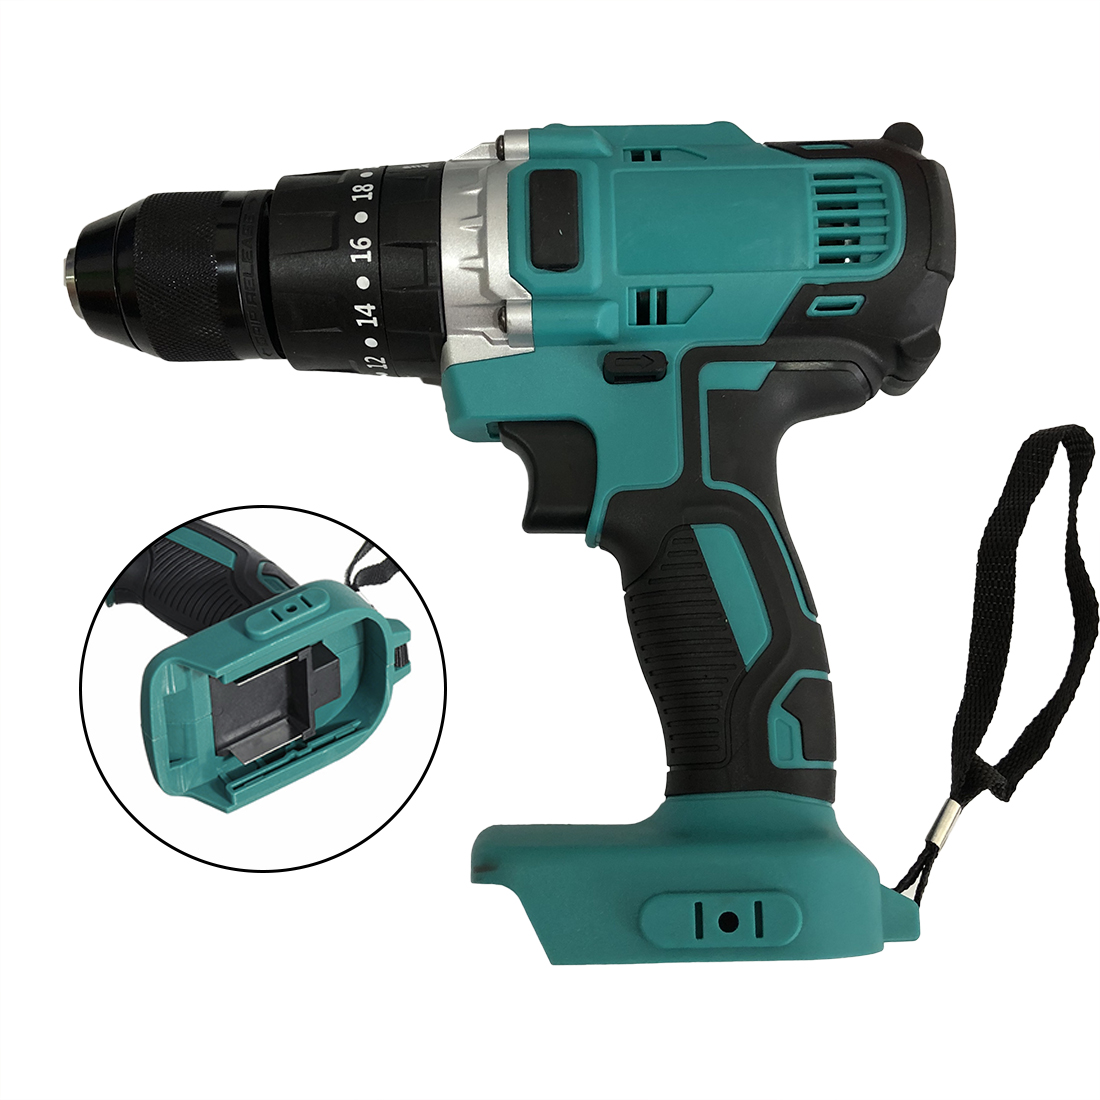 2020 Hot Sale Cordless Brushless Impact Drill For Makita 18 21V Li ion Battery No Batteries Brand New And High Quality|Electric Wrenches| |  - title=